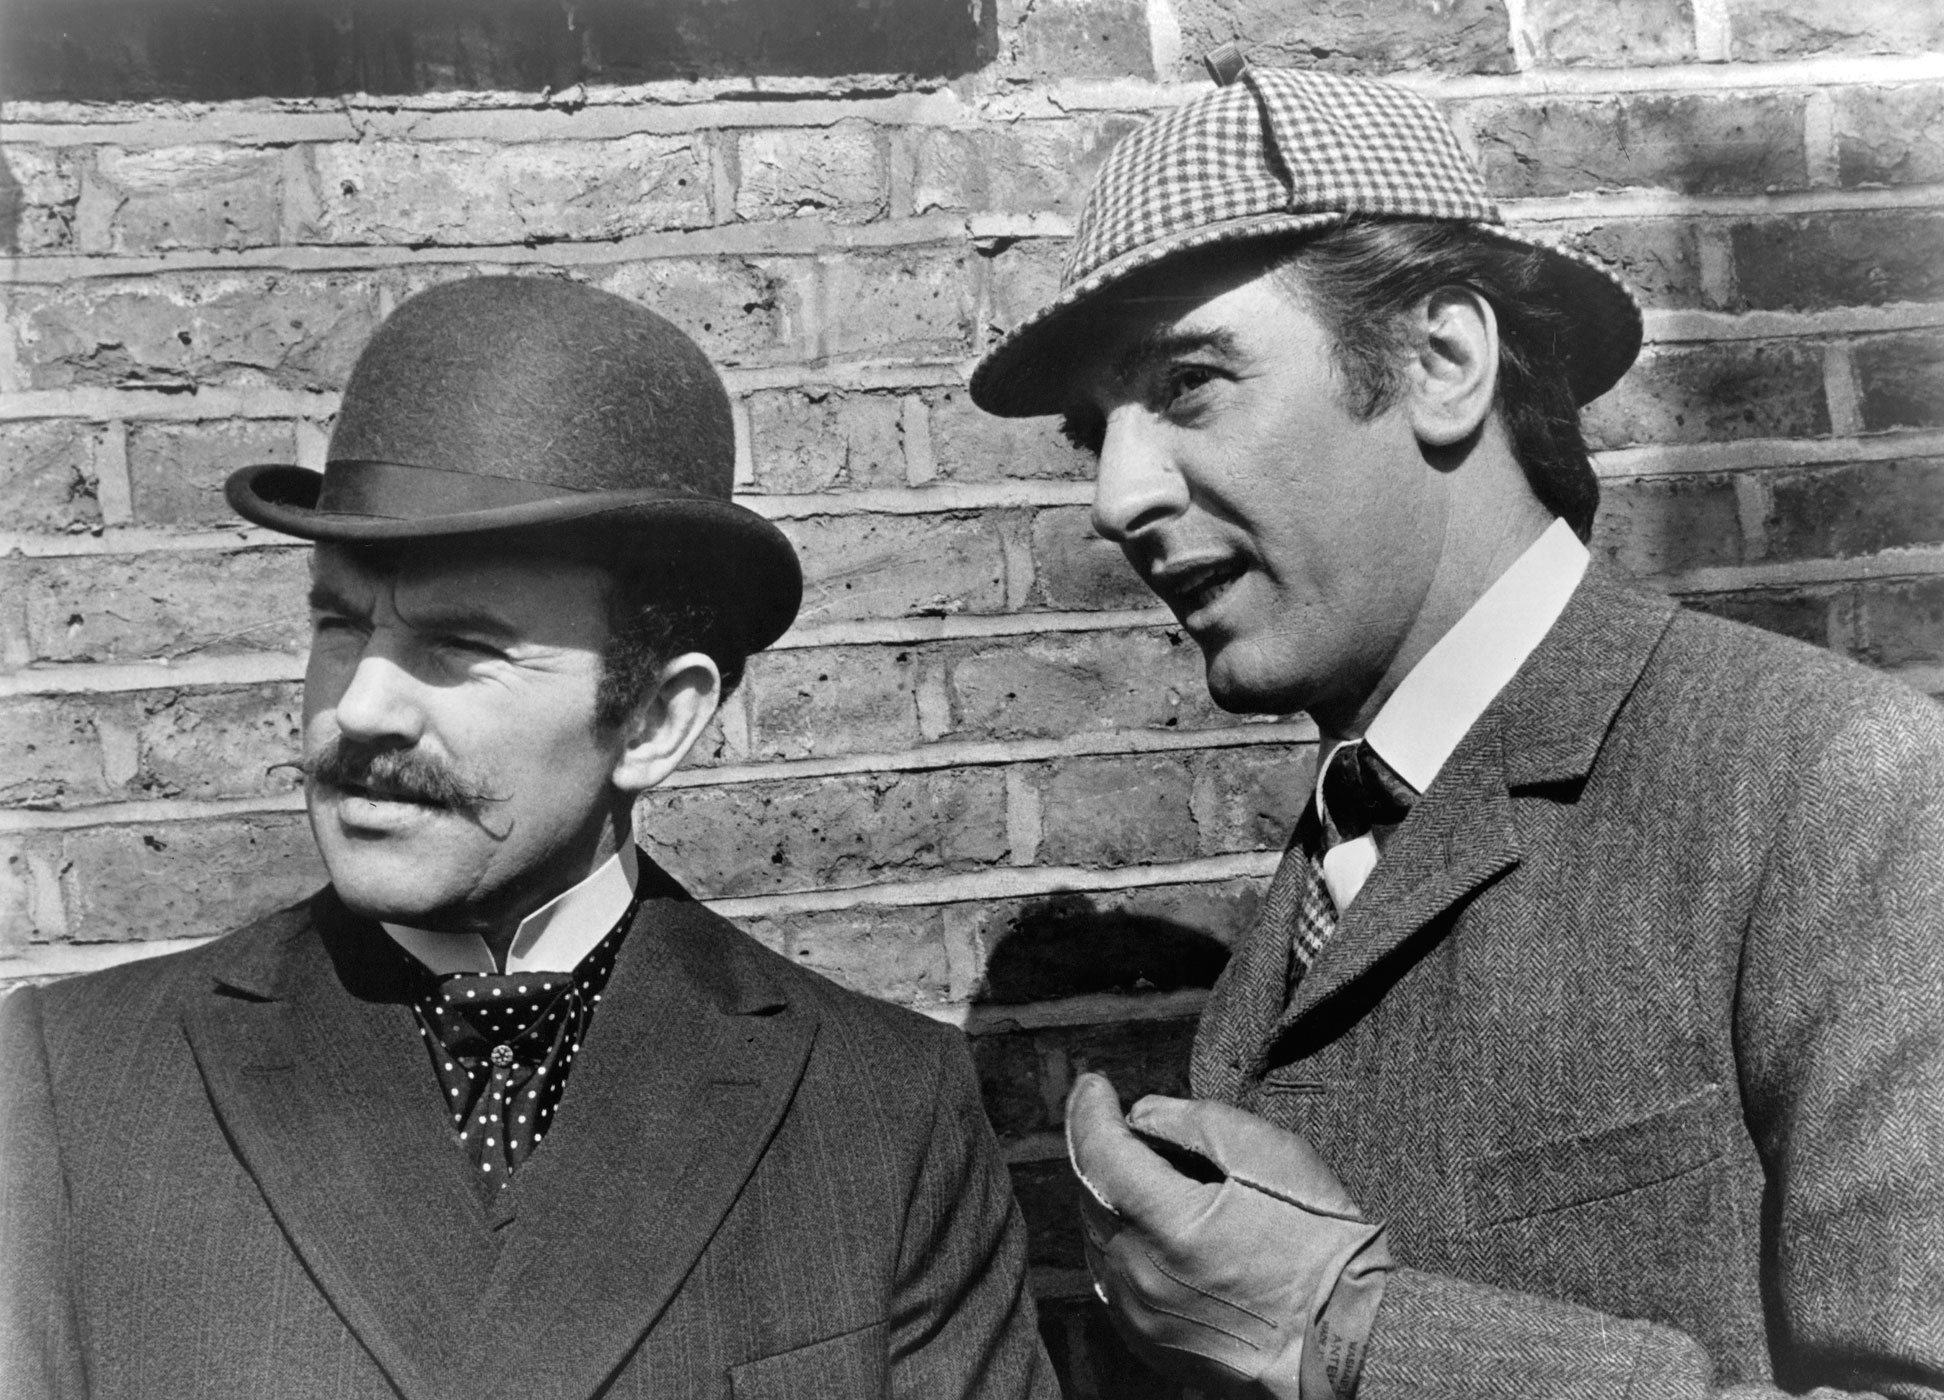 The Private Life of Sherlock Holmes, 1970. In Billy Wilder's melancholy comedy, Holmes (Robert Stevens) and Dr. Watson (Colin Blakely) travel to Scotland for a glimpse of the Loch Ness Monster. Spoiler Alert: Nessie is really a small prototype submarine, devised by Sherlock's brother Mycroft (Christopher Lee) and carrying an all-midget crew.